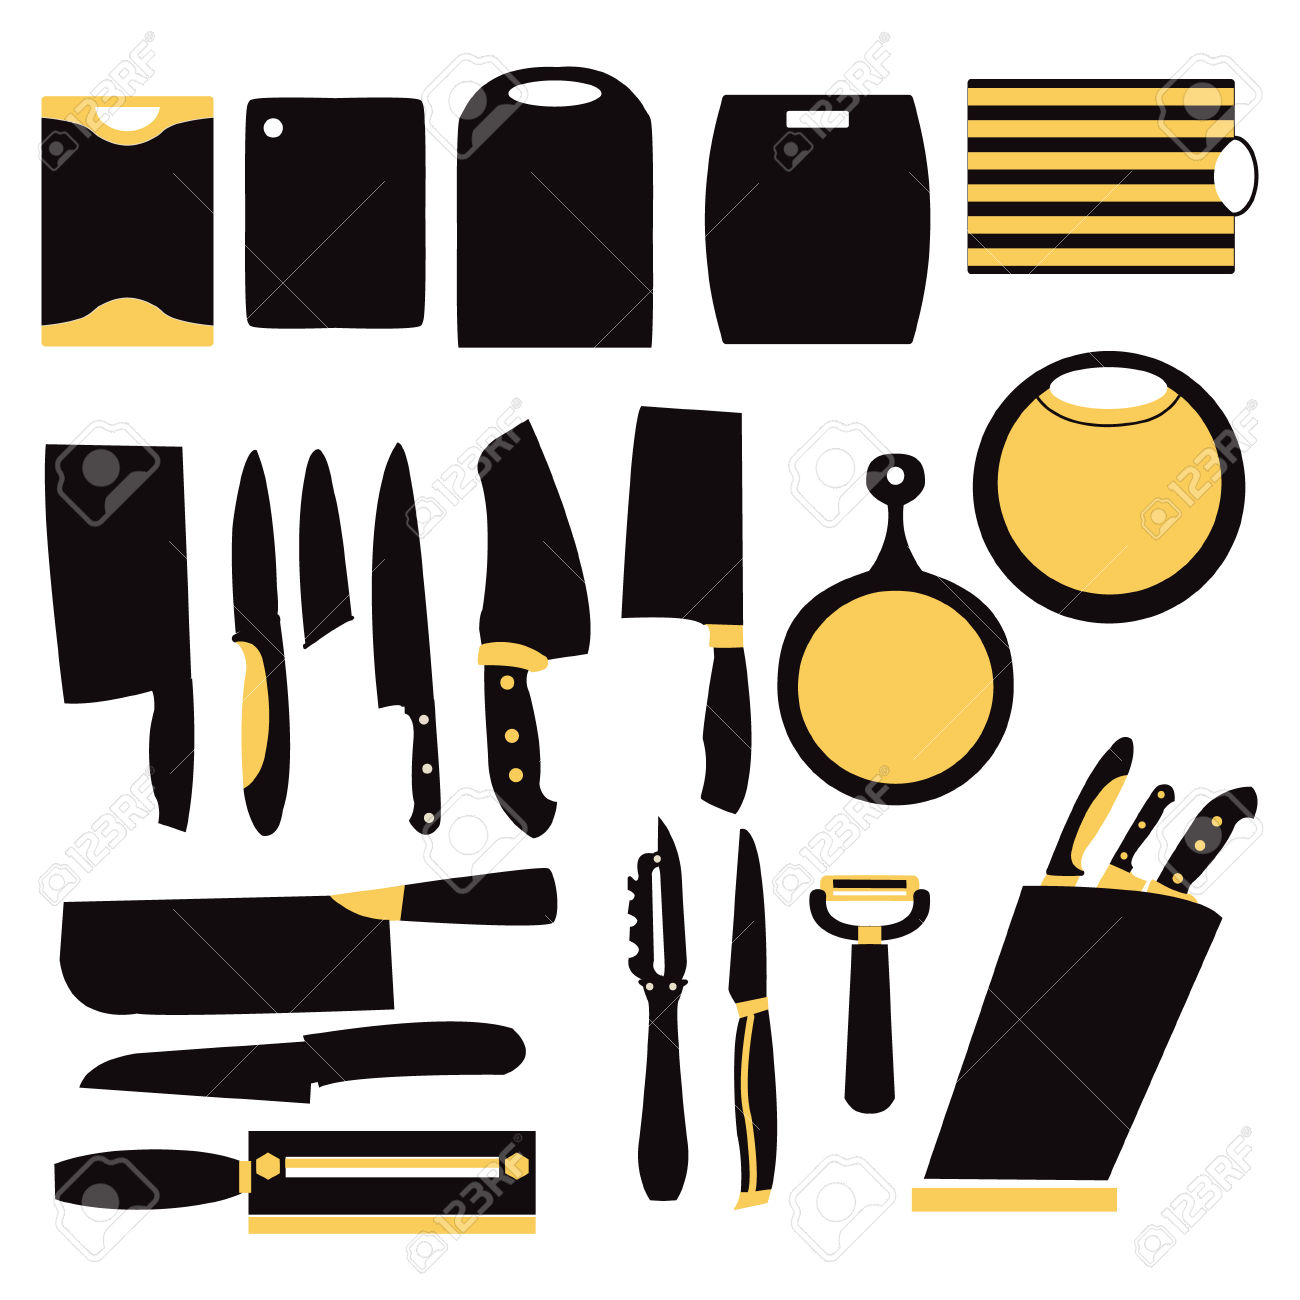 614 Commercial Kitchen Equipment Stock Vector Illustration And.